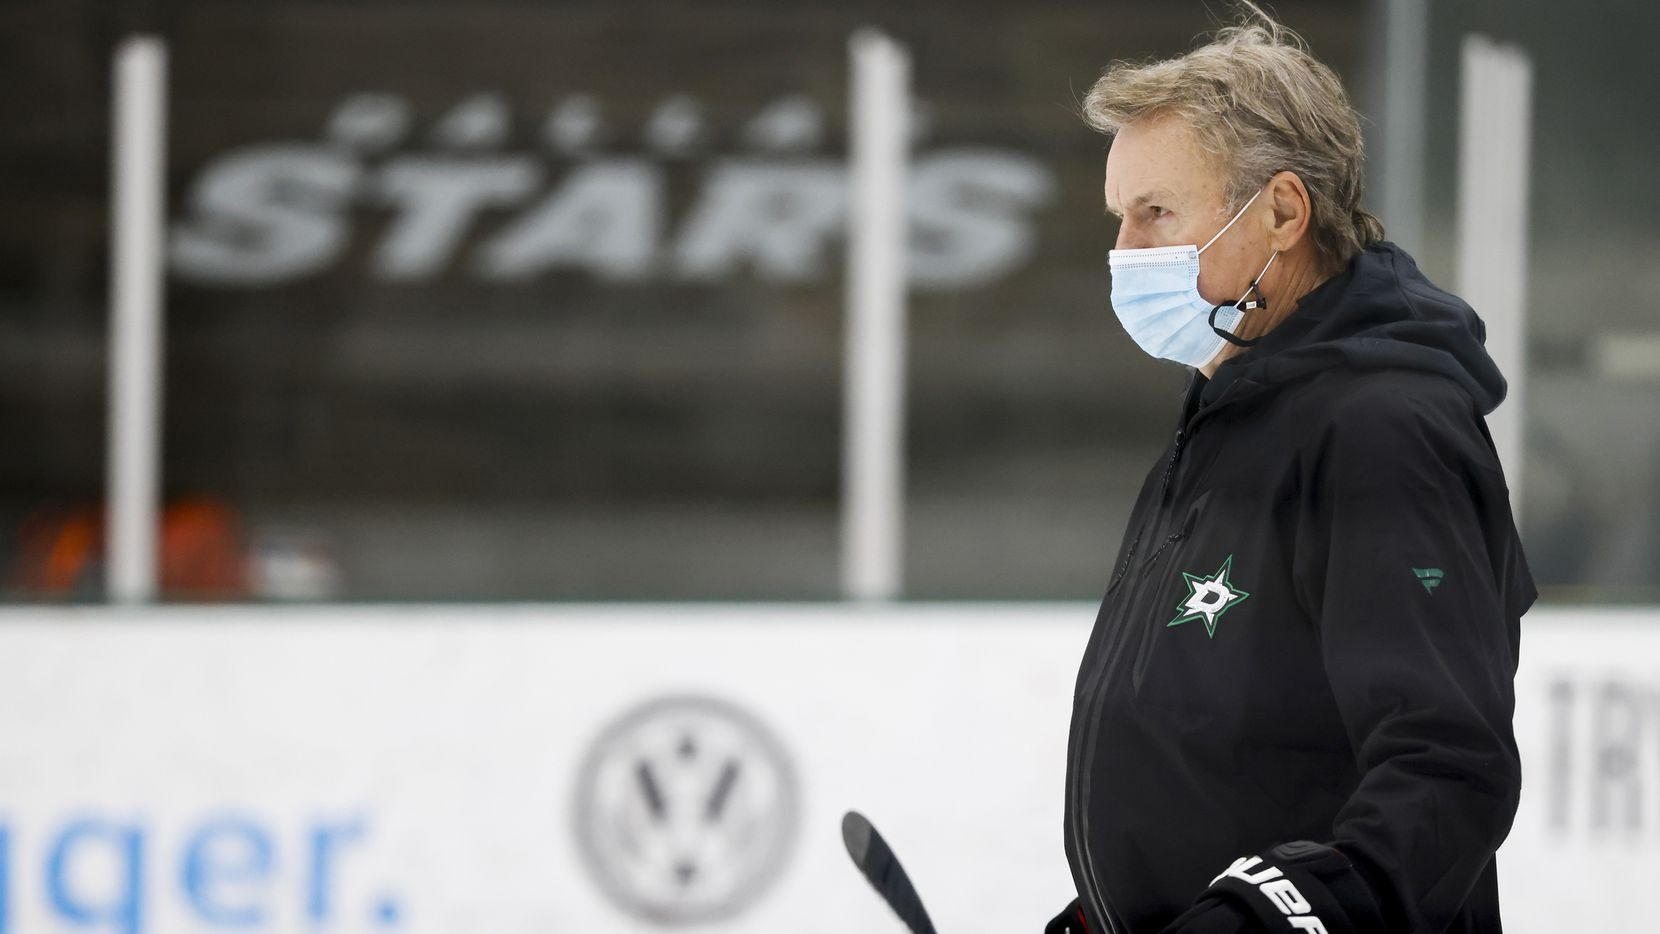 Dallas Stars head coach Rick Bowness watches his team workout during a training camp practice at the Comerica Center on Wednesday, Jan. 6, 2021, in Frisco. (Smiley N. Pool/The Dallas Morning News)